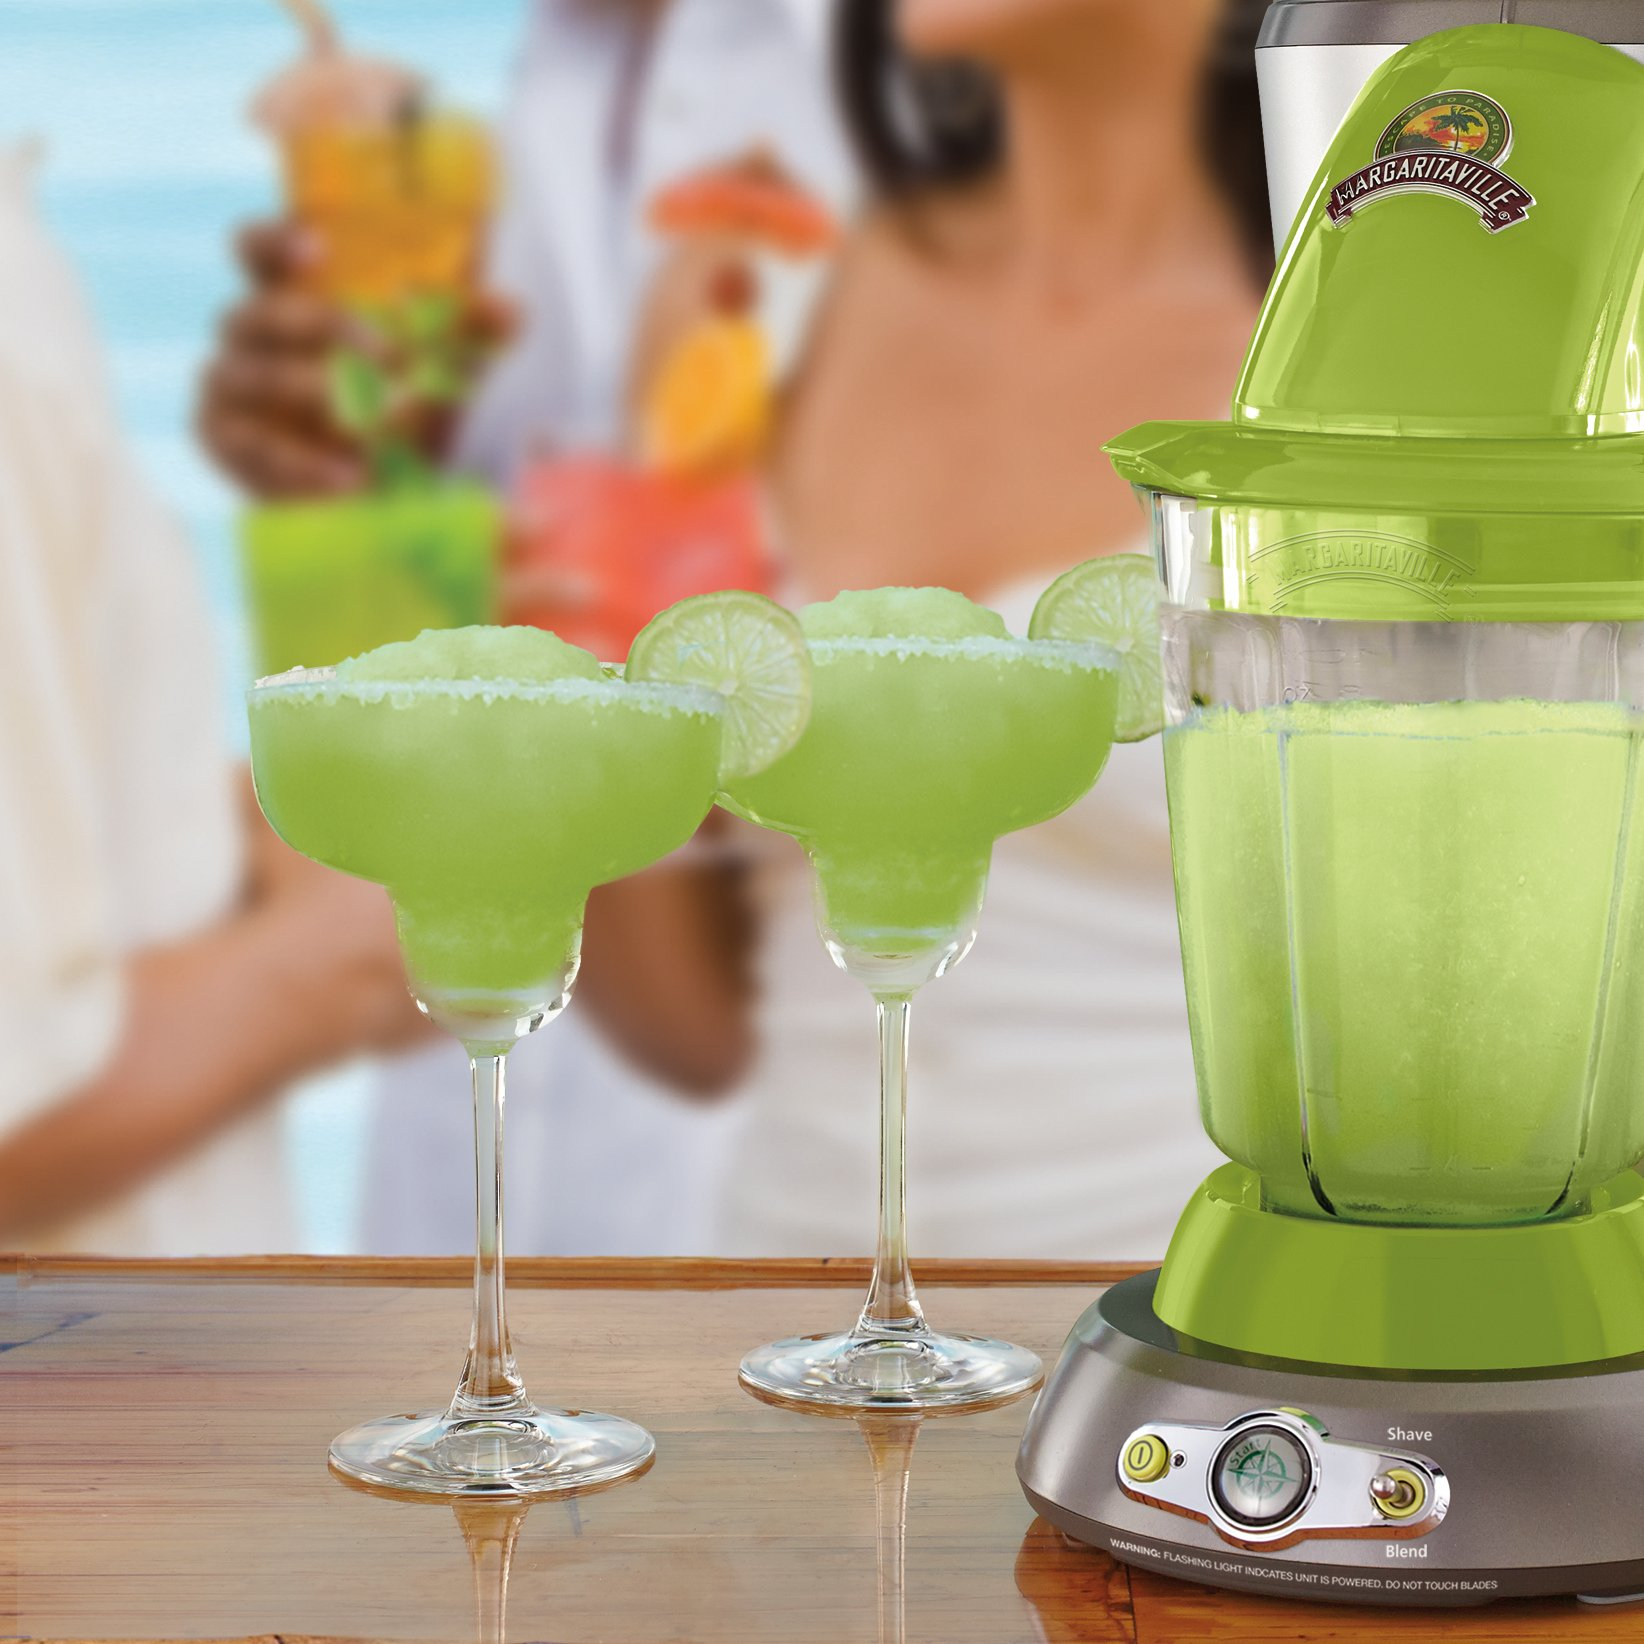 Margaritaville Bahamas Frozen Concoction Maker with No Brainer Mixer, DM0700 by Margaritaville (Image #3)